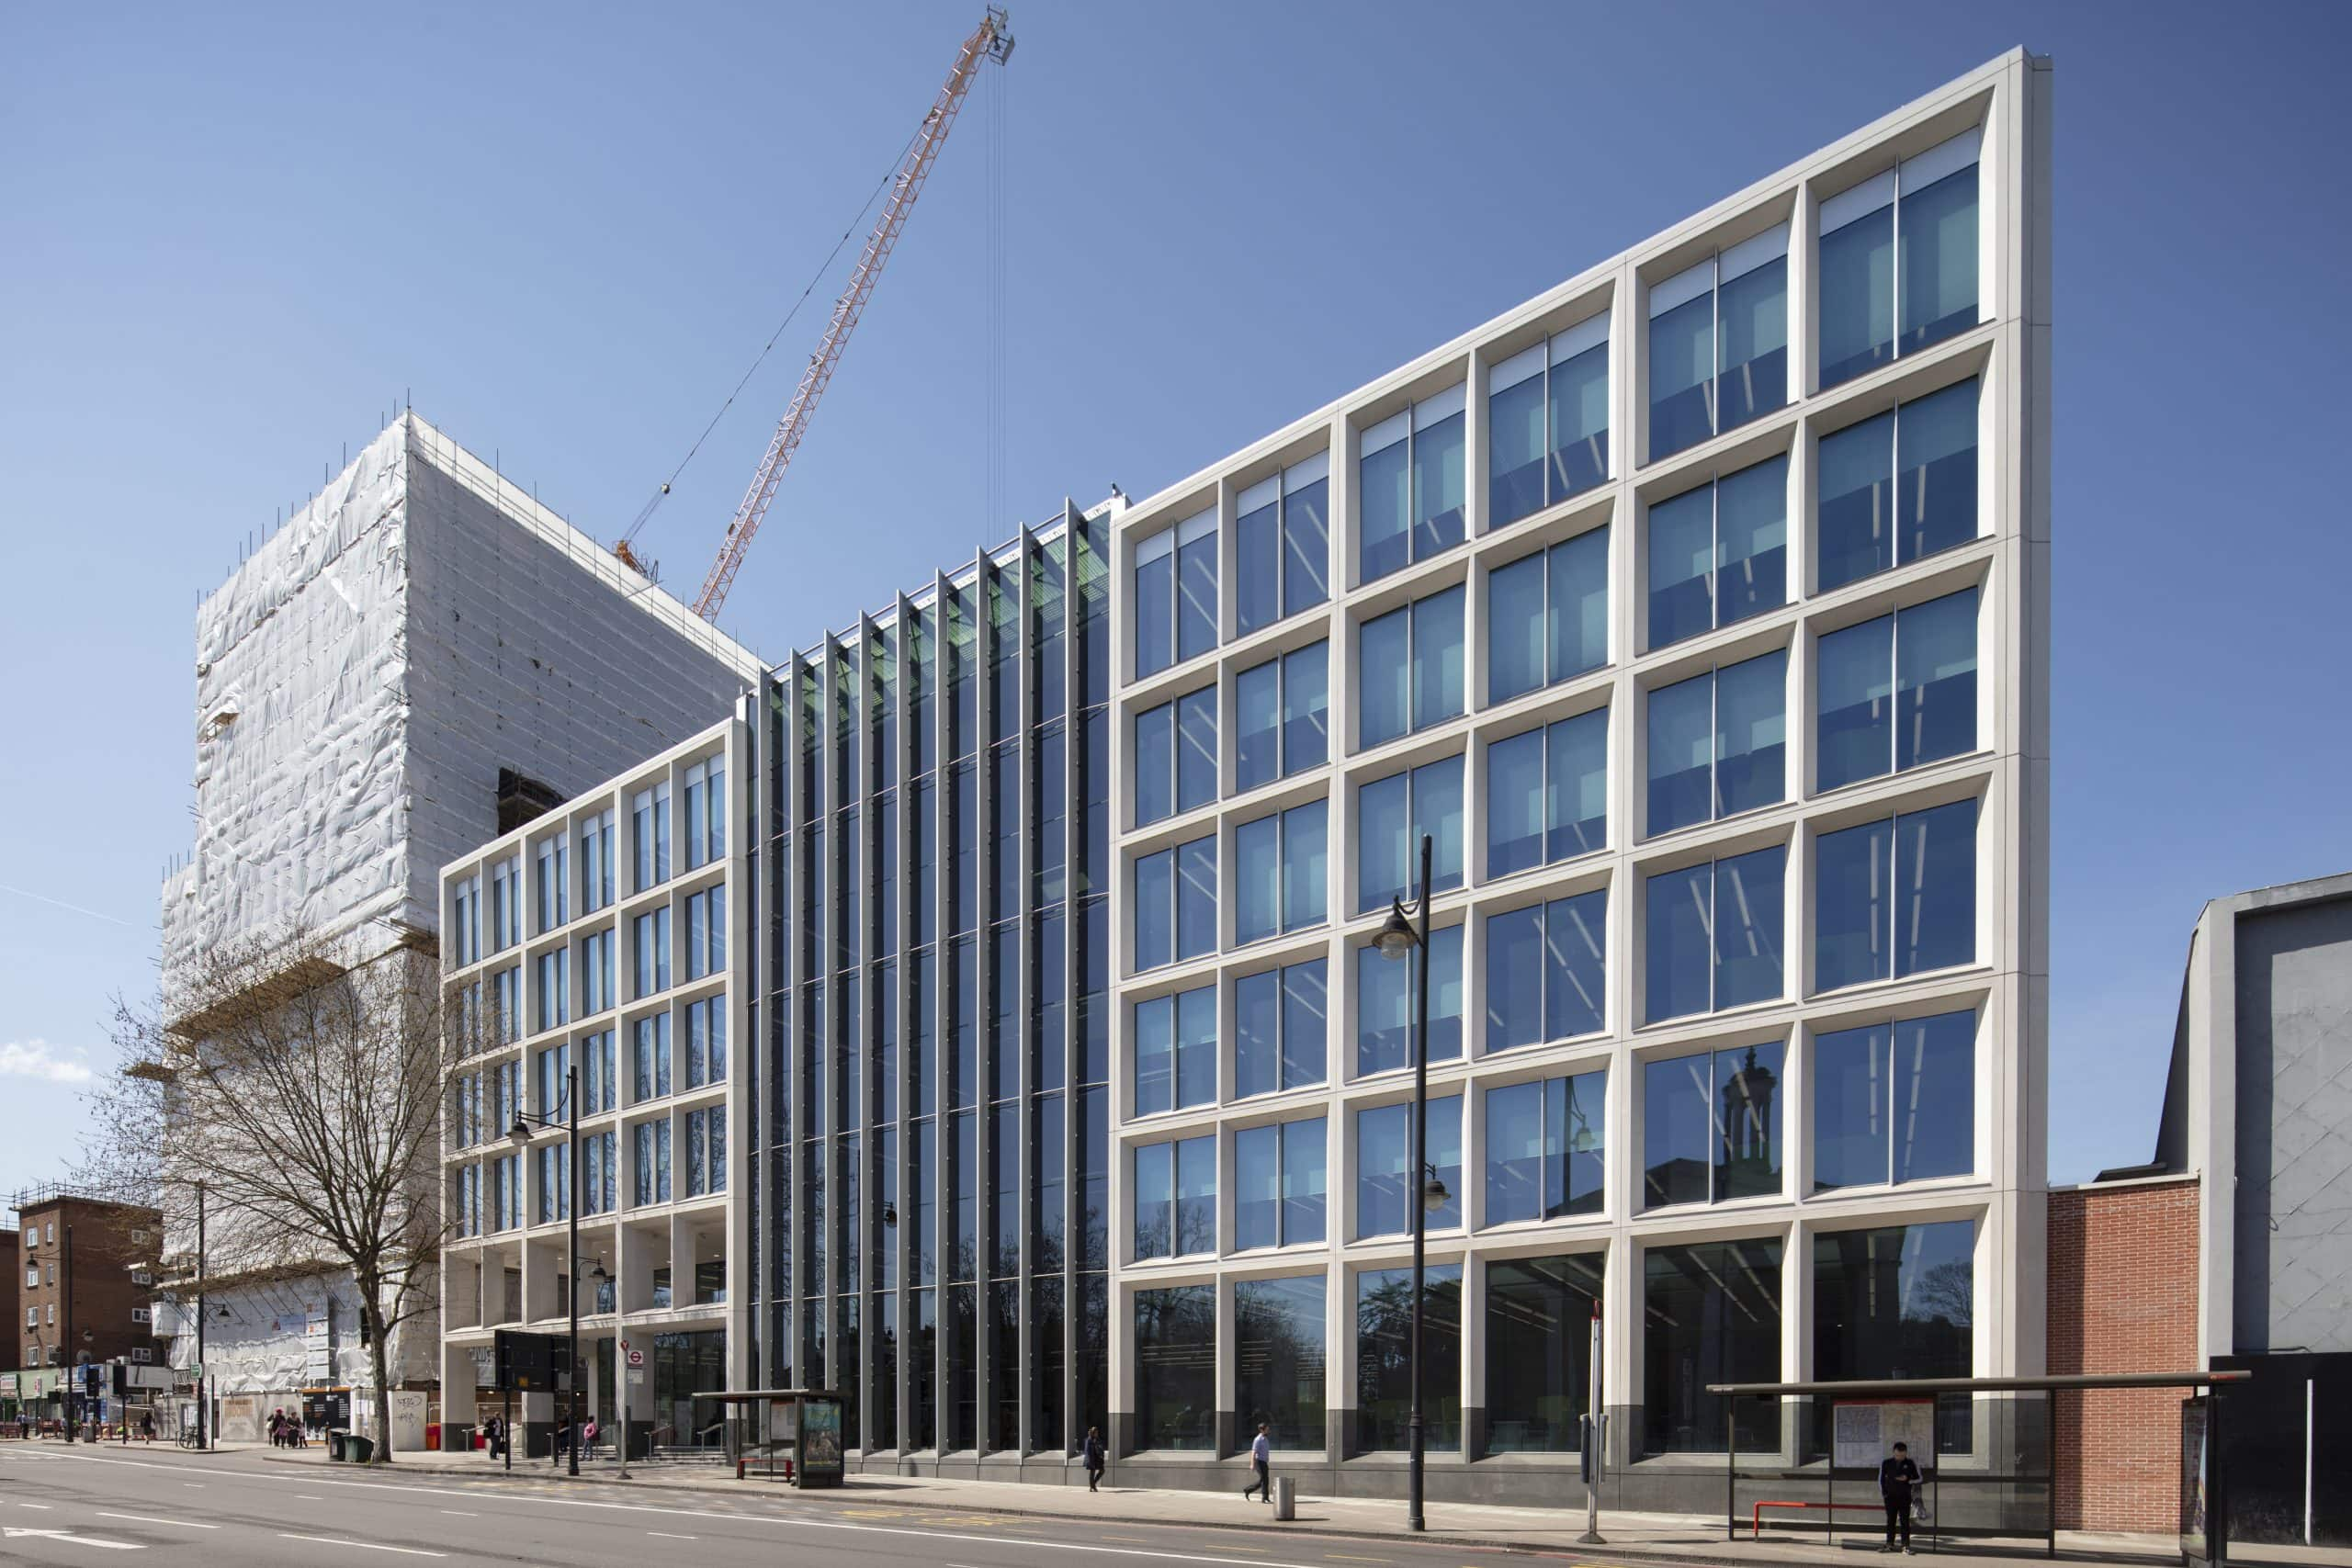 for Lambeth Civic Centre in London that uses electrochromic glass as a solar shading solution